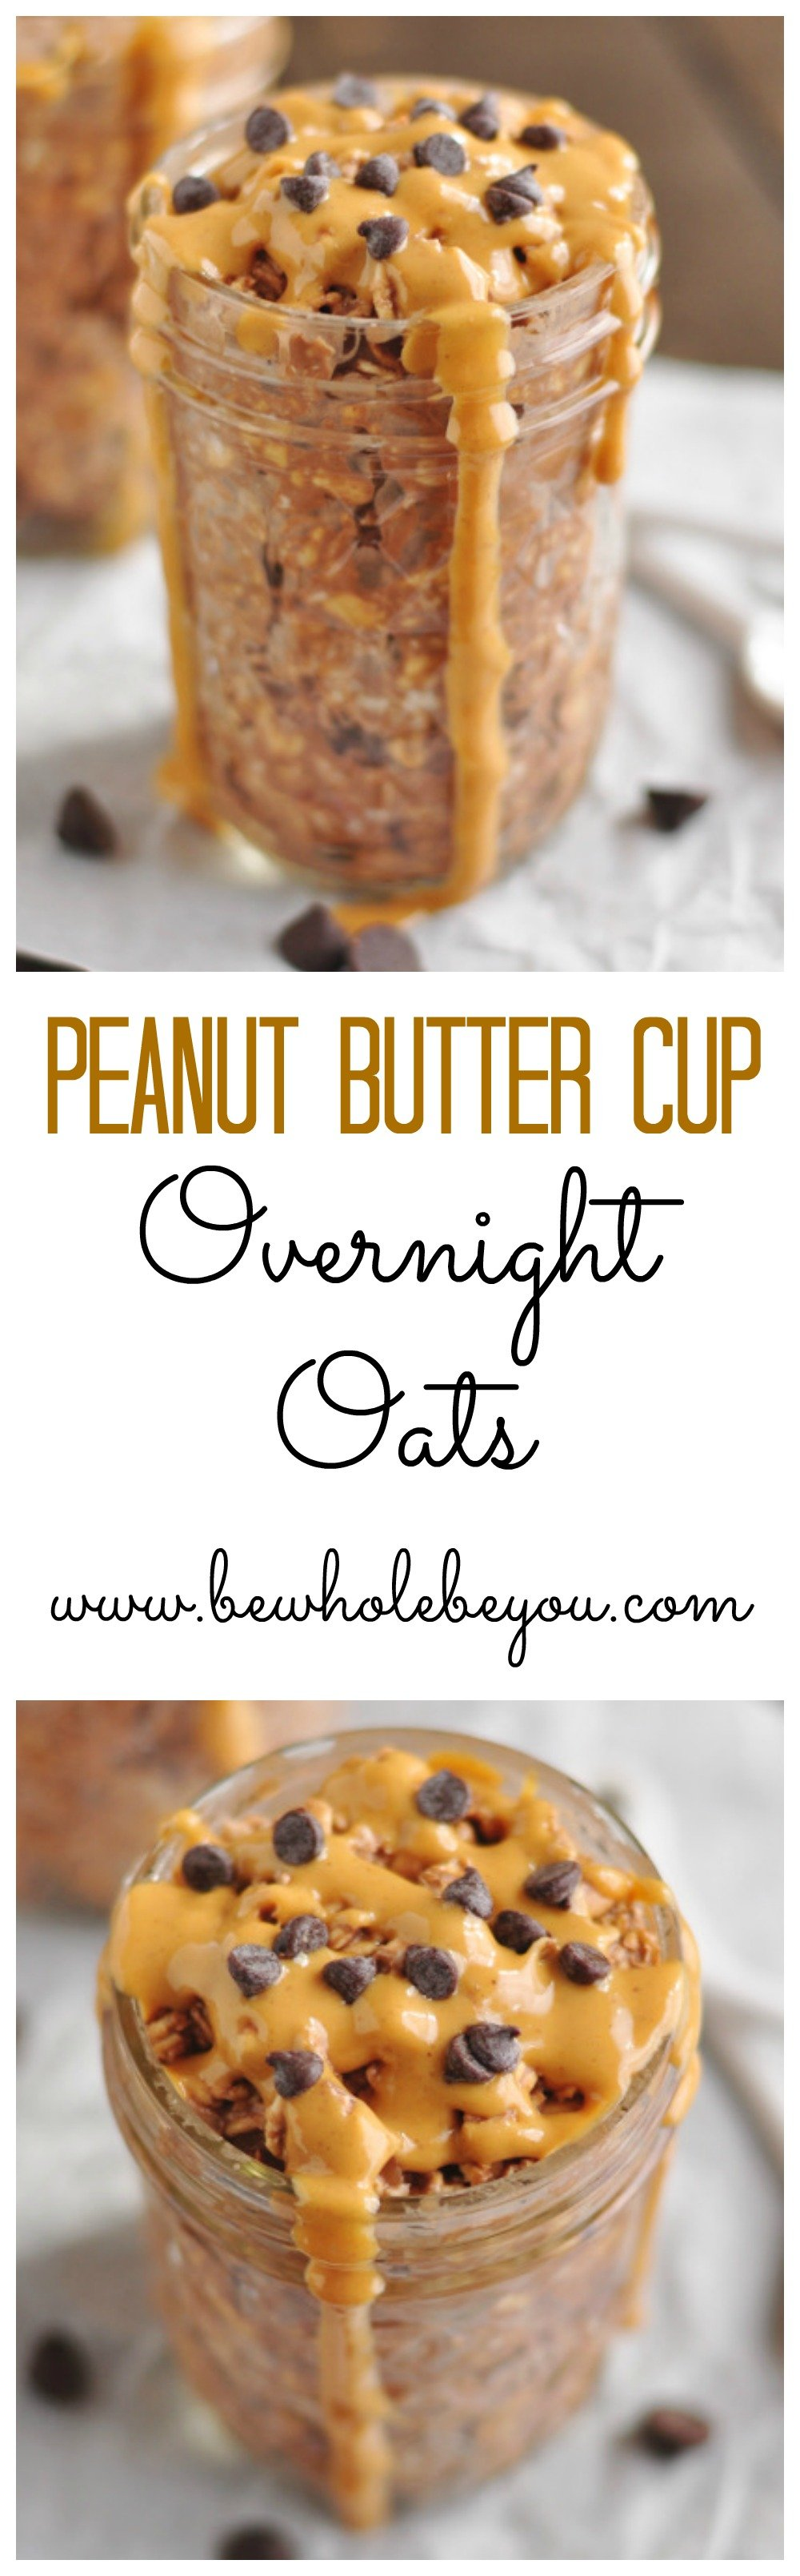 A healthy breakfast in a jar? You bet! This recipe for peanut butter cup overnight oats is perfect for busy mornings. Can easily be made vegan if needed! #oats #overnightoats #masonjar #easyrecipe #vegan #peanutbutter